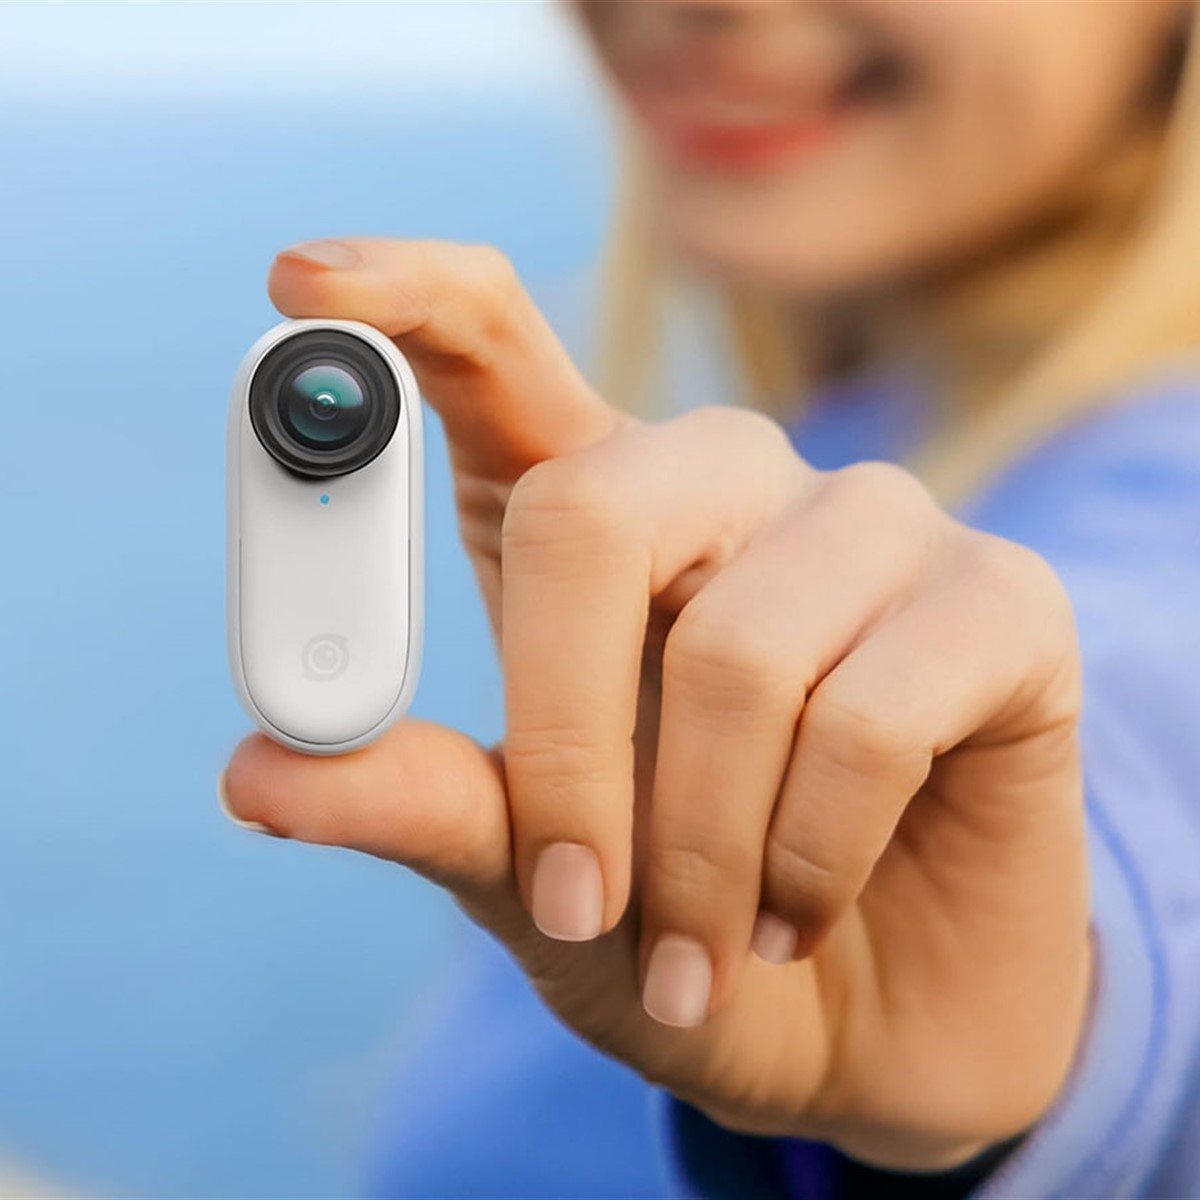 Insta360 GO 2 Miniature Action Camera